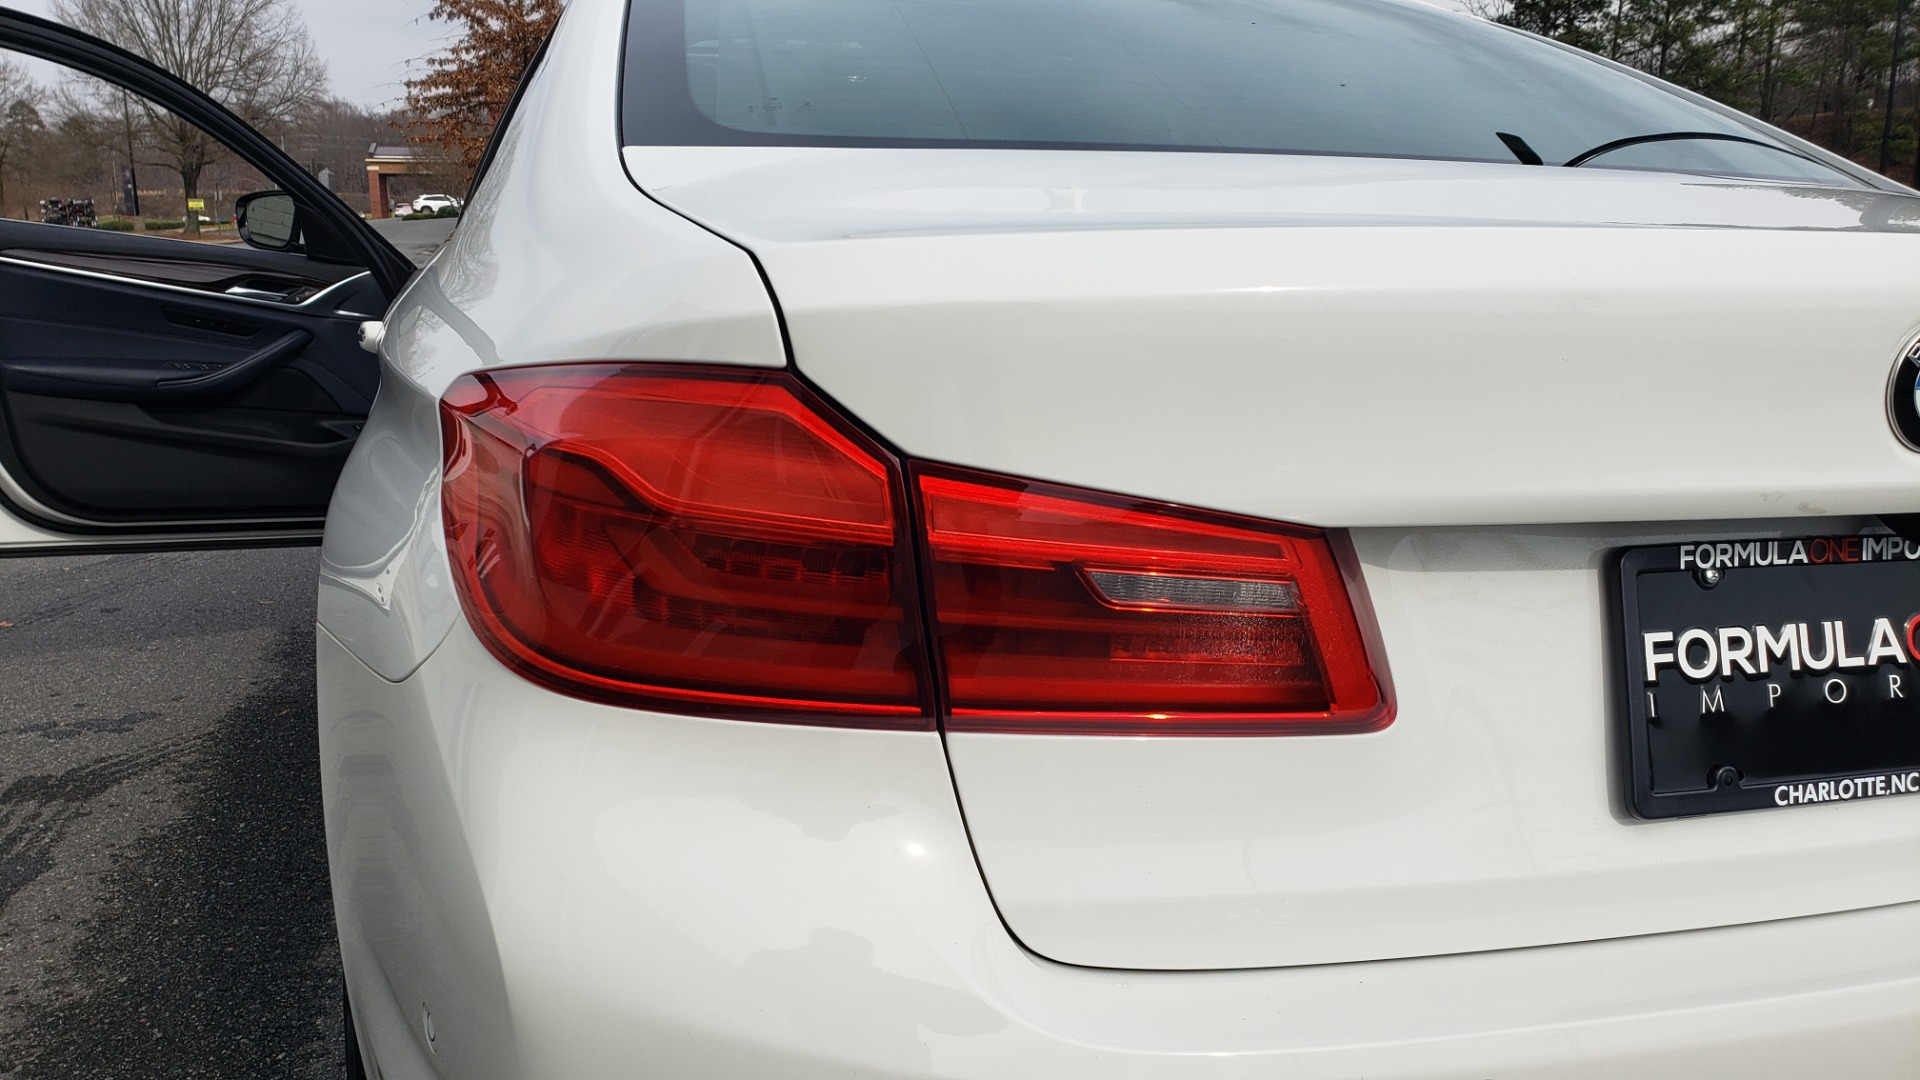 Used 2017 BMW 5 SERIES 530I PREMIUM / DRVR ASST PLUS / NAV / HUD / SUNROOF / REARVIEW for sale Sold at Formula Imports in Charlotte NC 28227 25